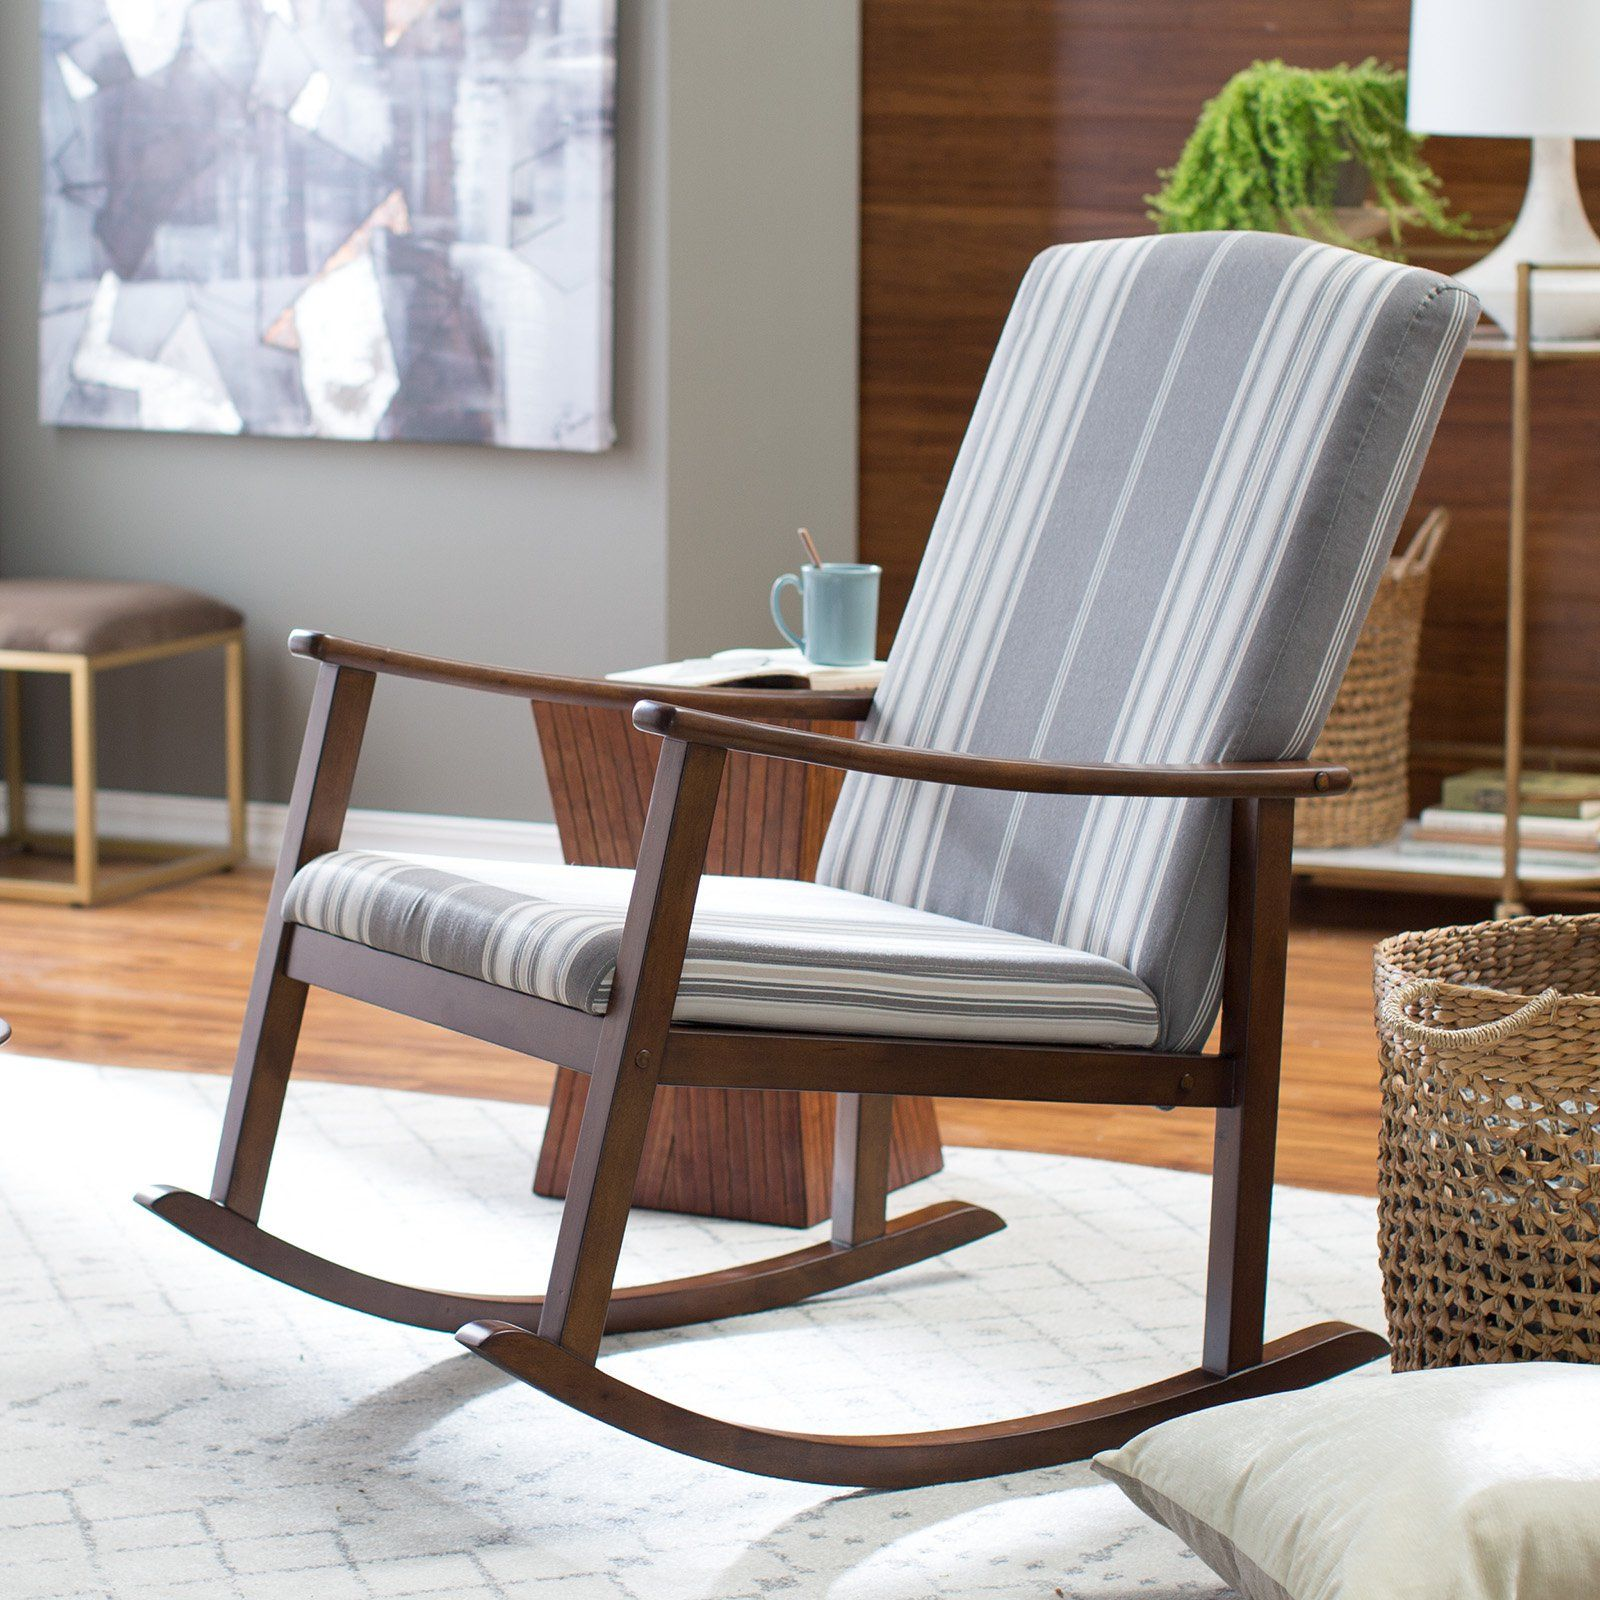 Great Belham Living Holden Striped Modern Rocking Chair | From Hayneedle.com